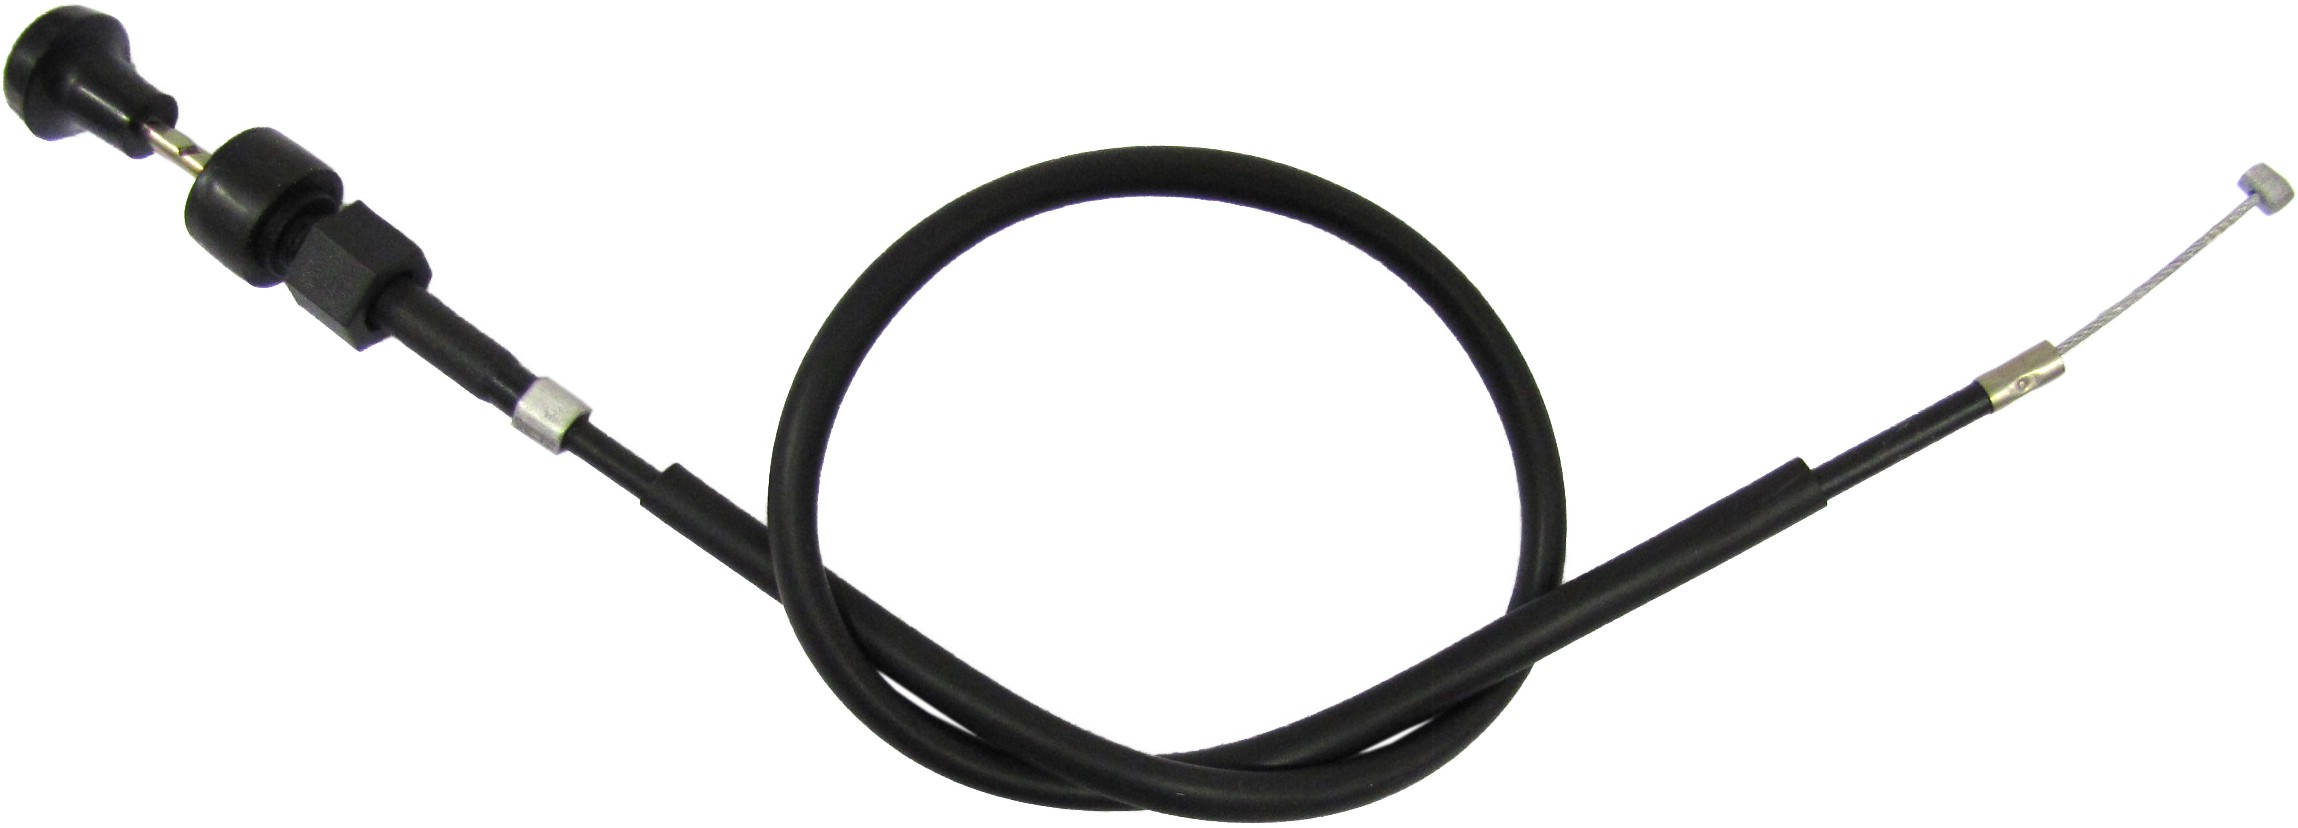 Yamaha XTZ 750 Super Tenere (Europe) 1989-1995 Choke Cable